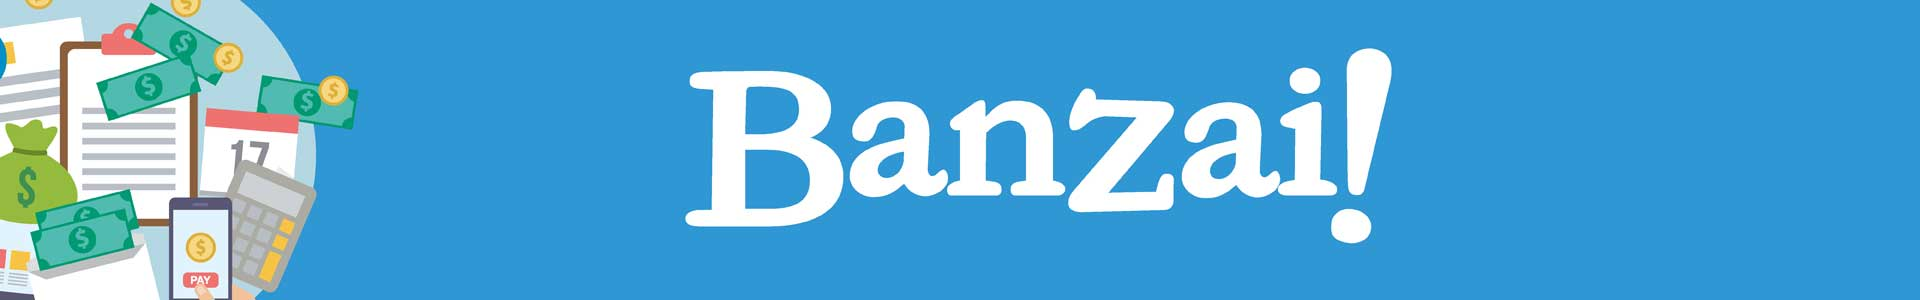 Banzai! Picture of money, calculator and financial planning